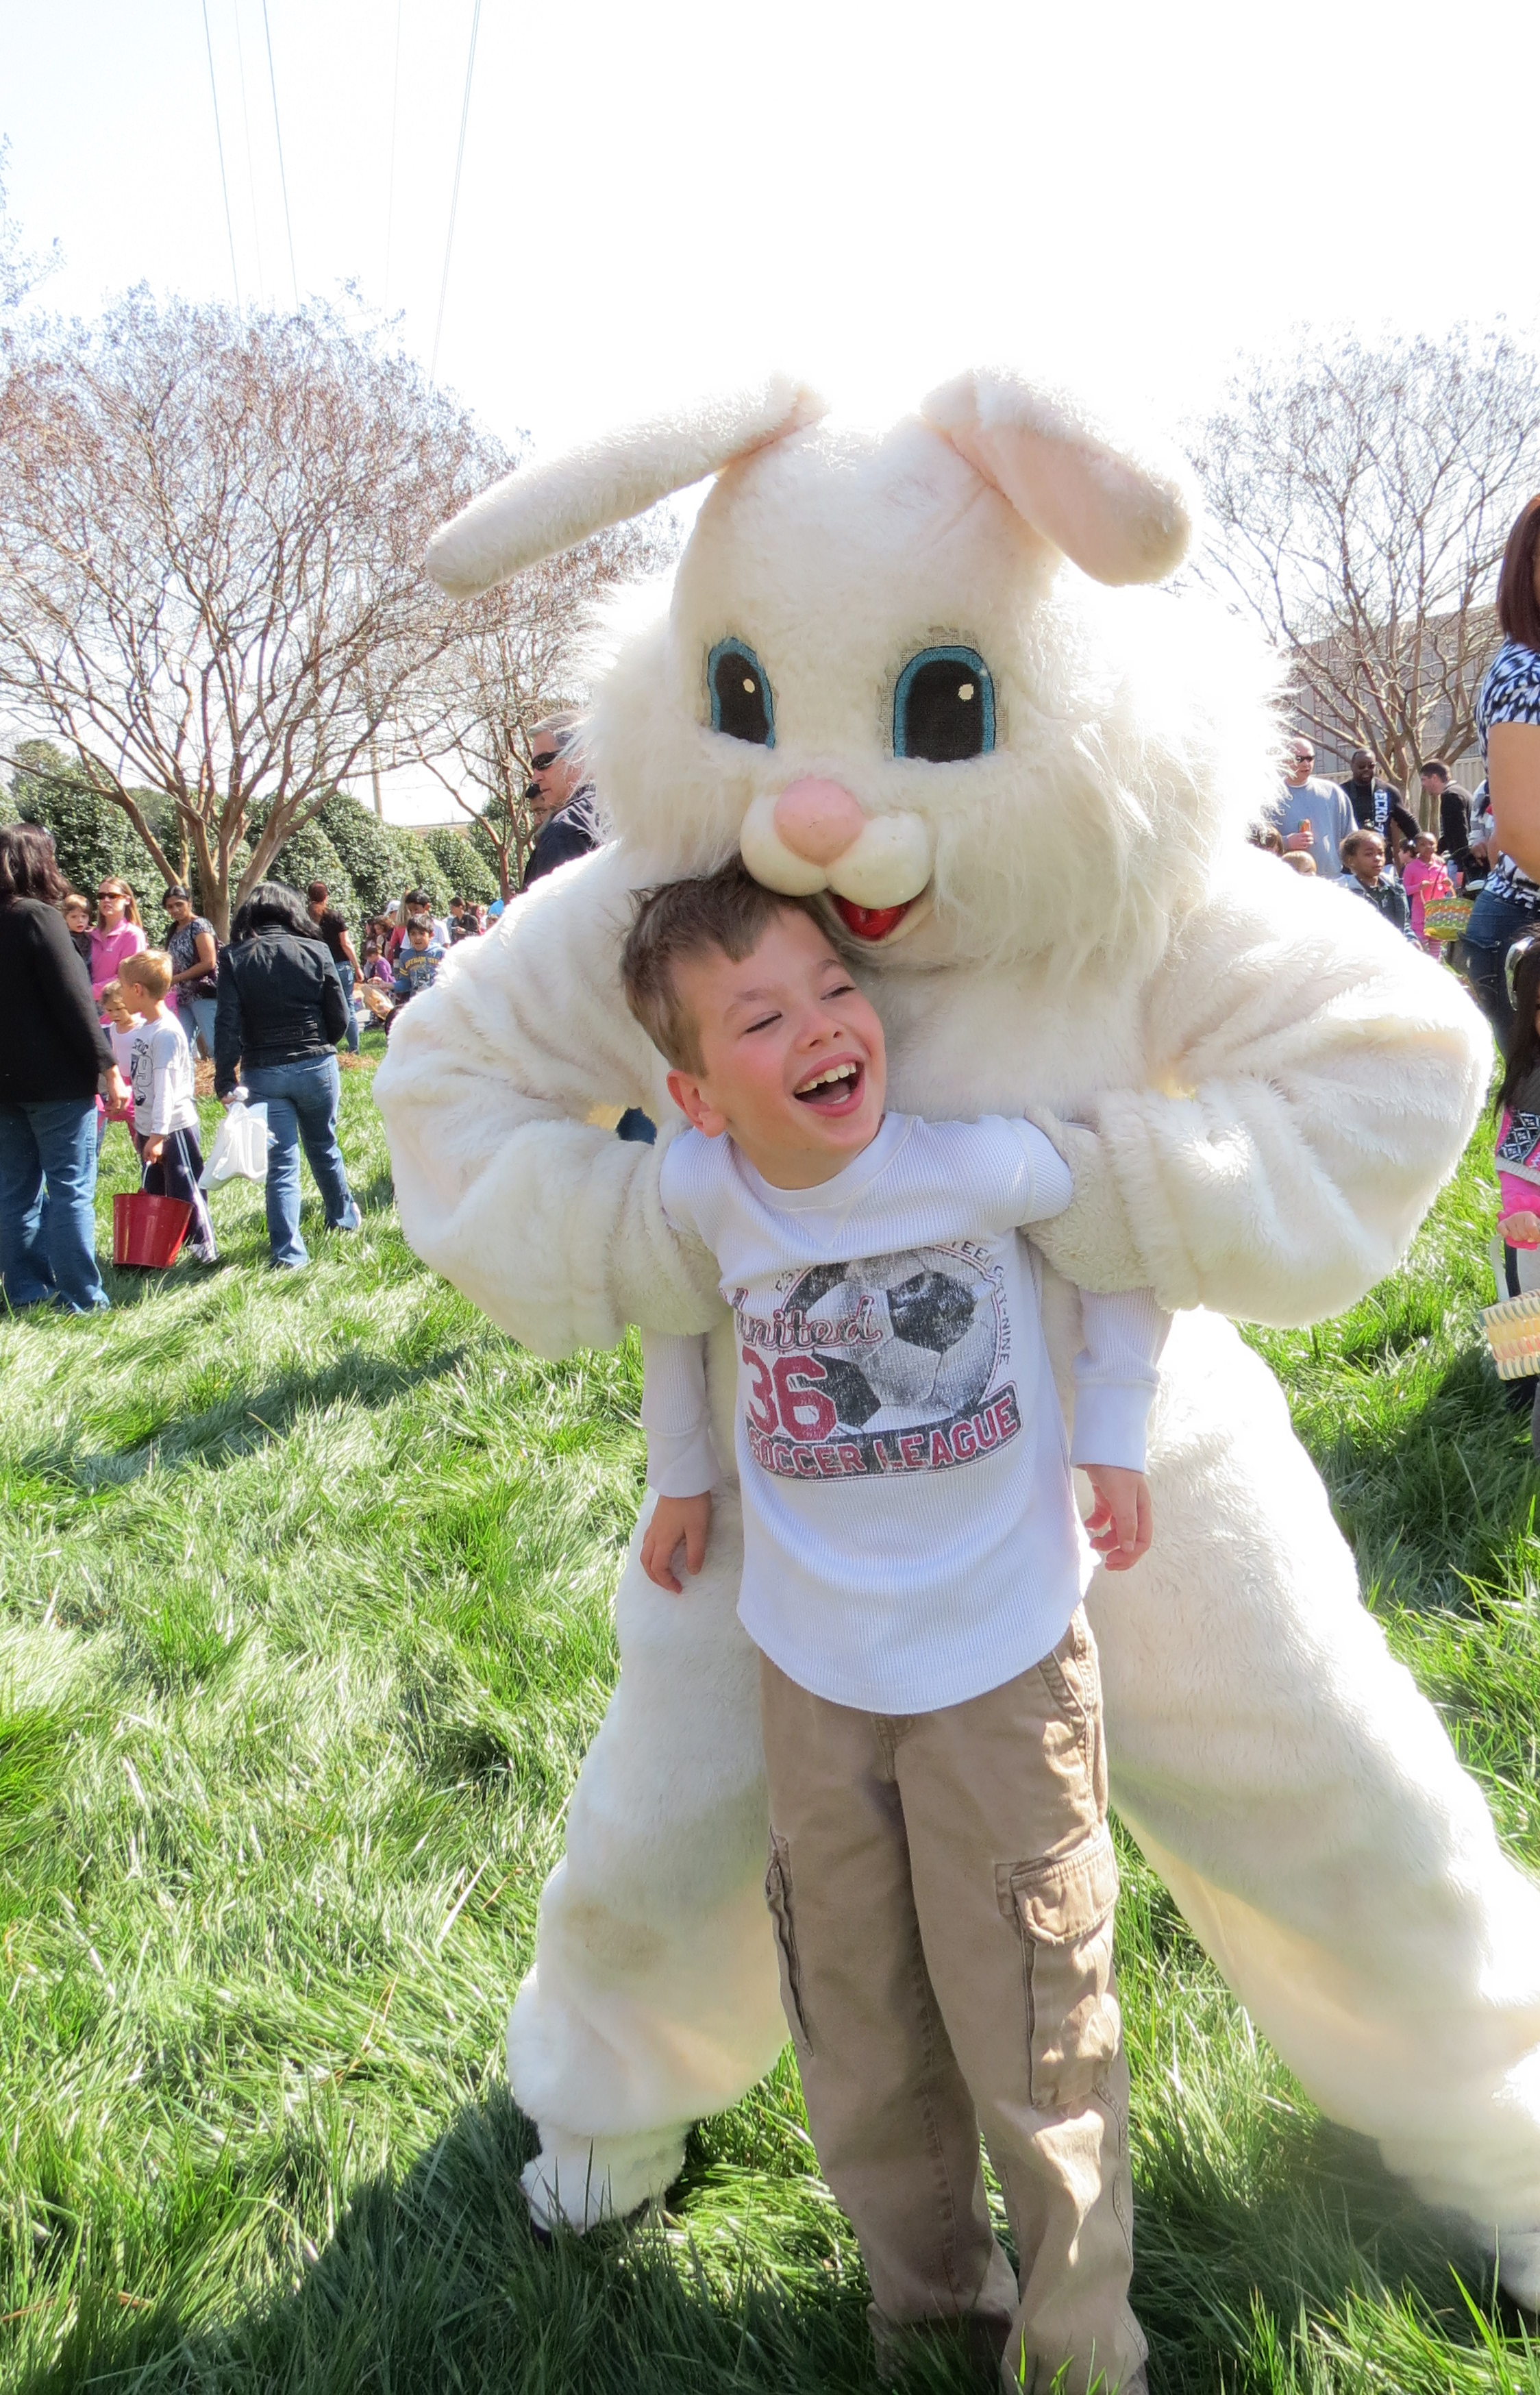 Landon having fun with the Easter Bunny